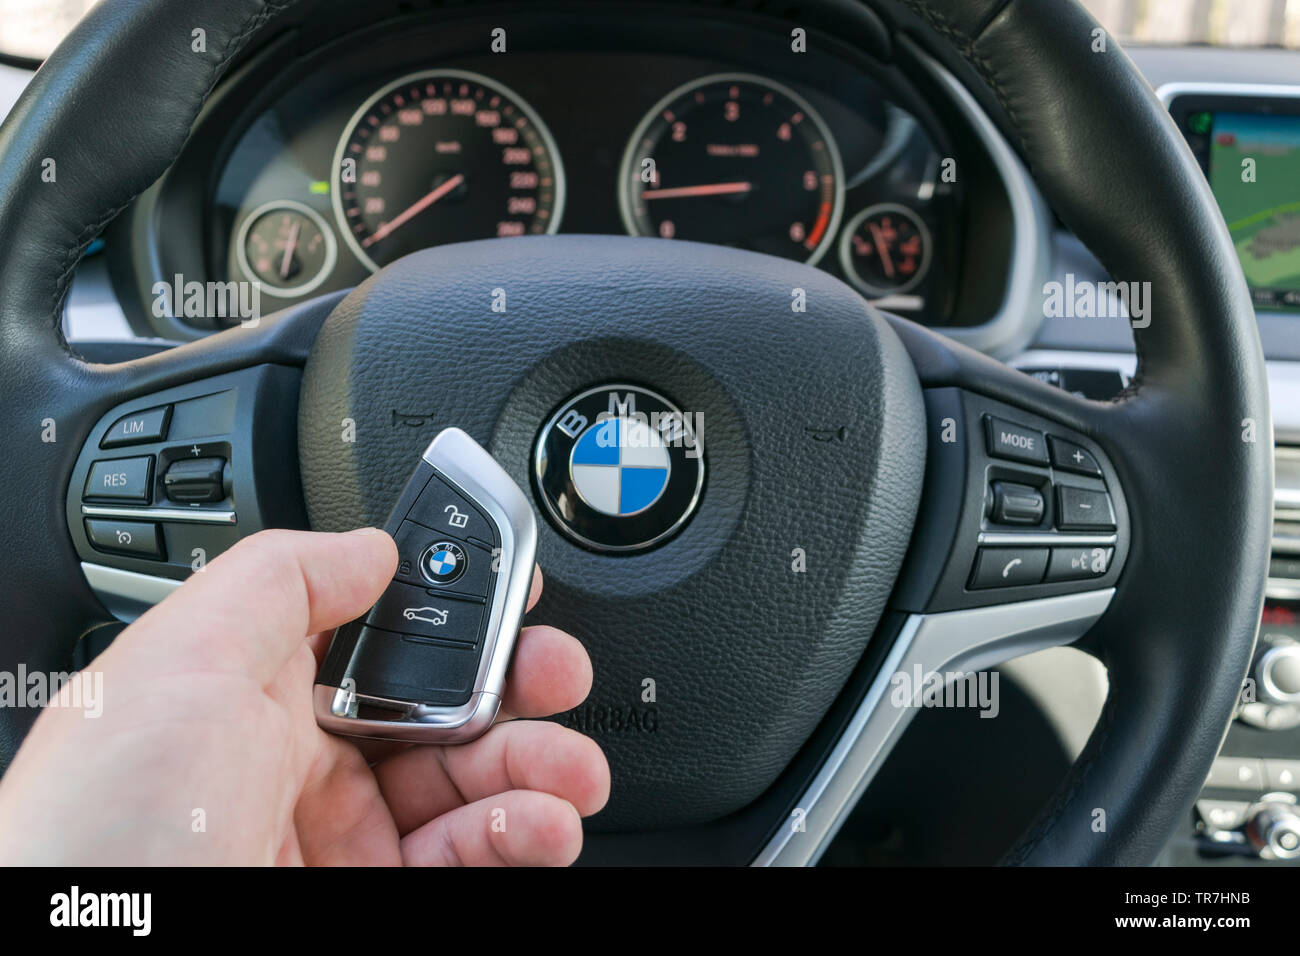 Sankt-Petersburg Russia, April 4, 2018: Man's hand holding a wireless BMW X5 F15 car key in black leather car interior. Modern Car interior details. C - Stock Image